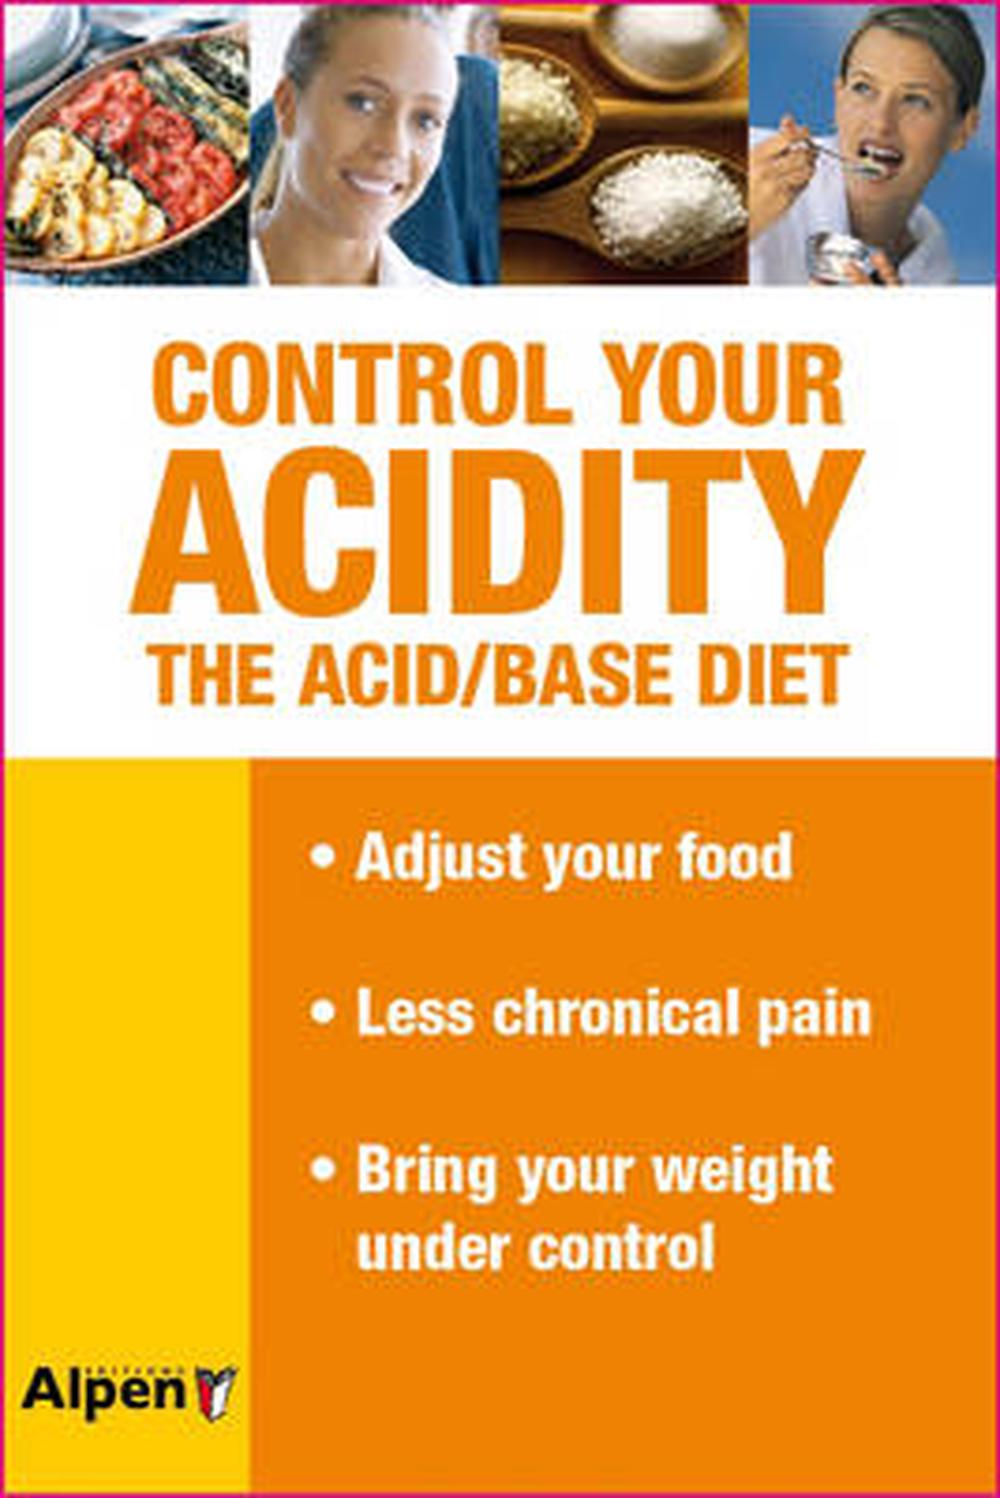 Control Your Acidity: The Acid/Base Diet